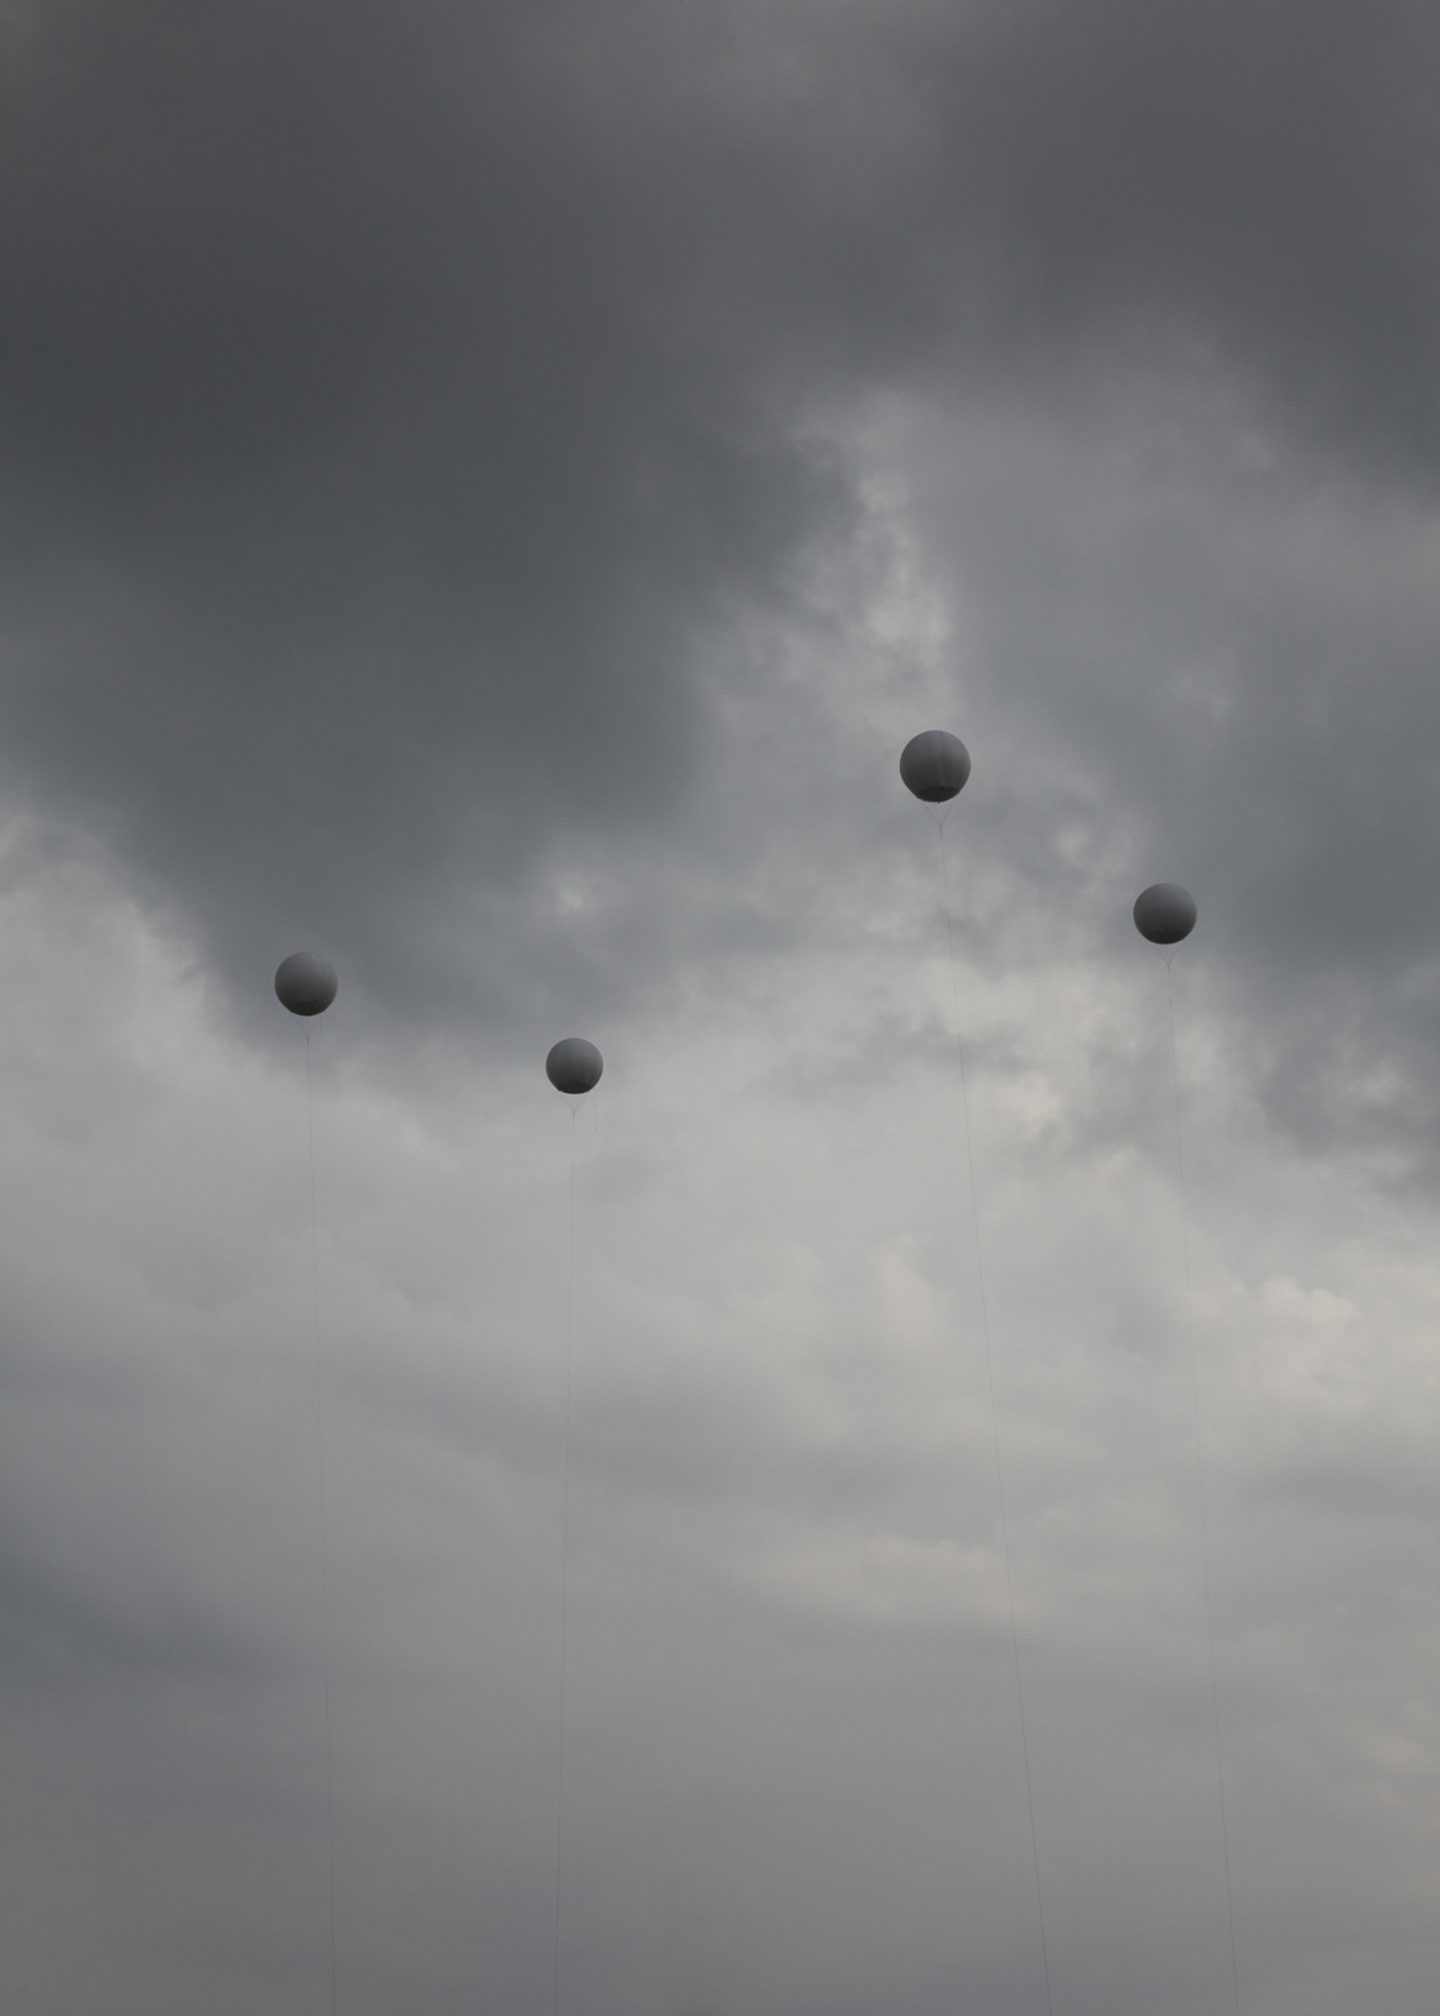 iGNANT-Photography-Delphine-Burton-Encouble-011